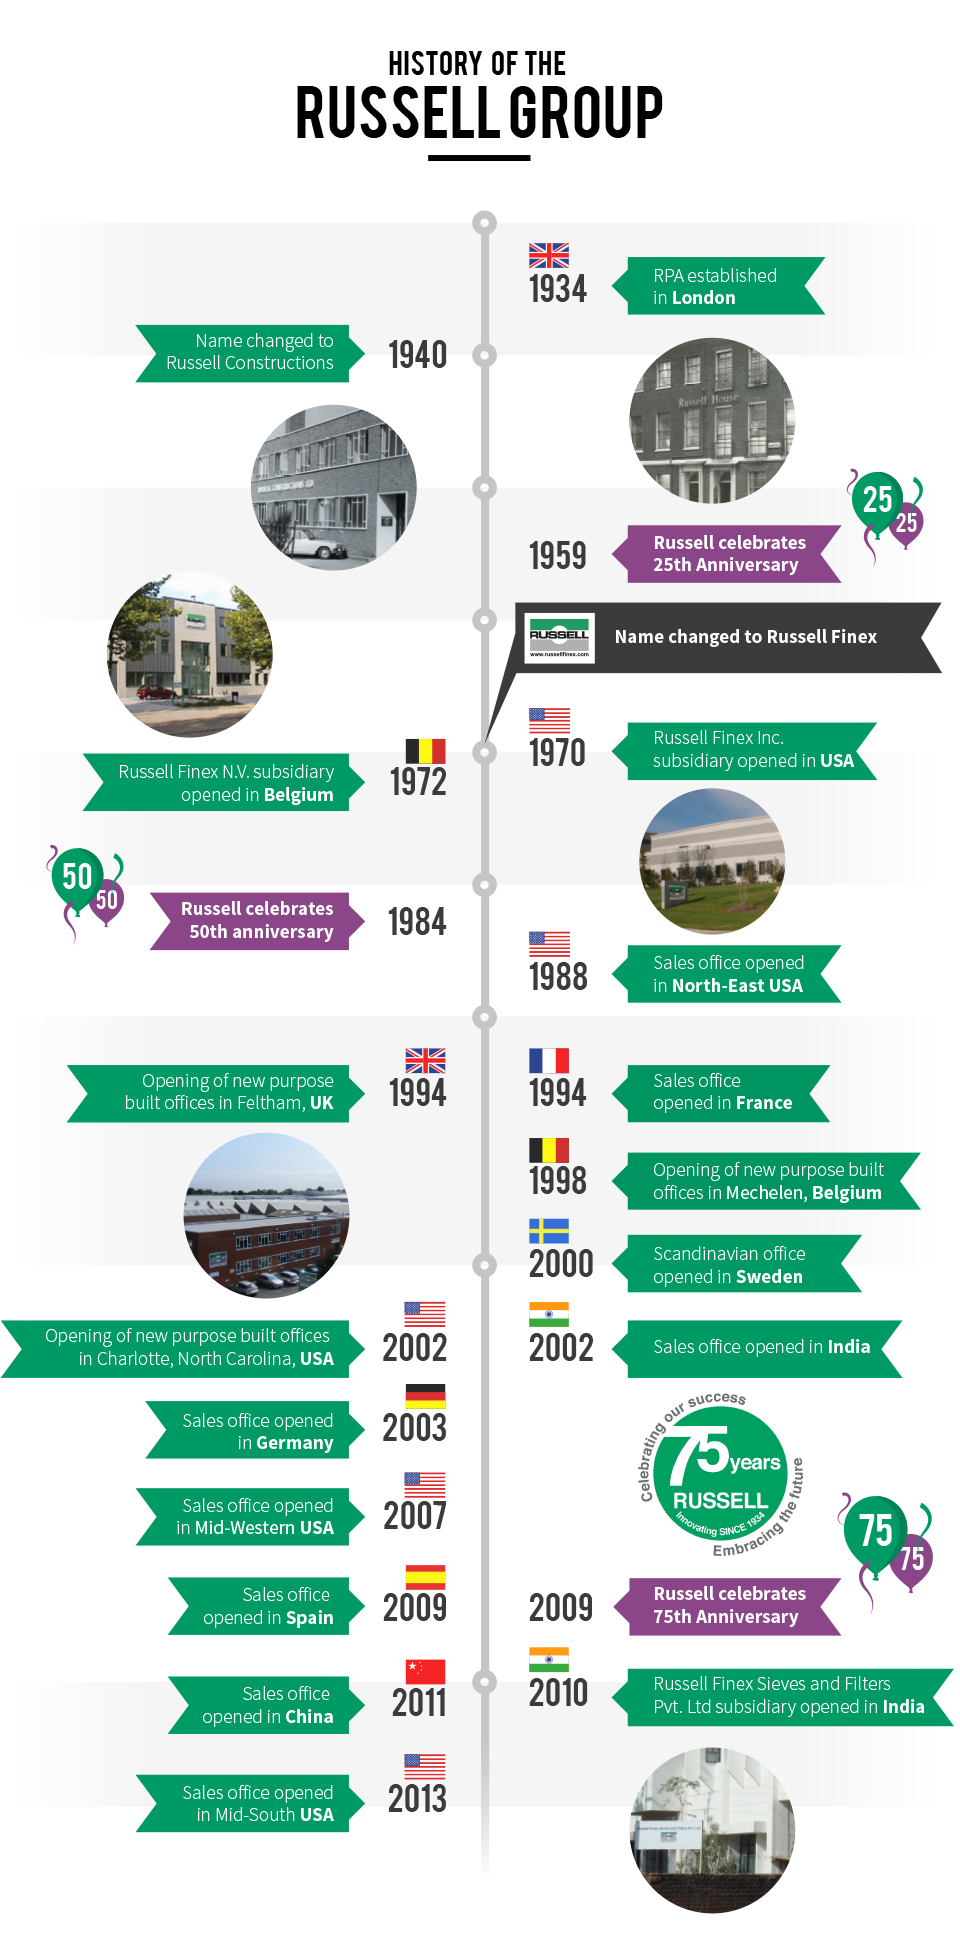 Russell Finex history infographic